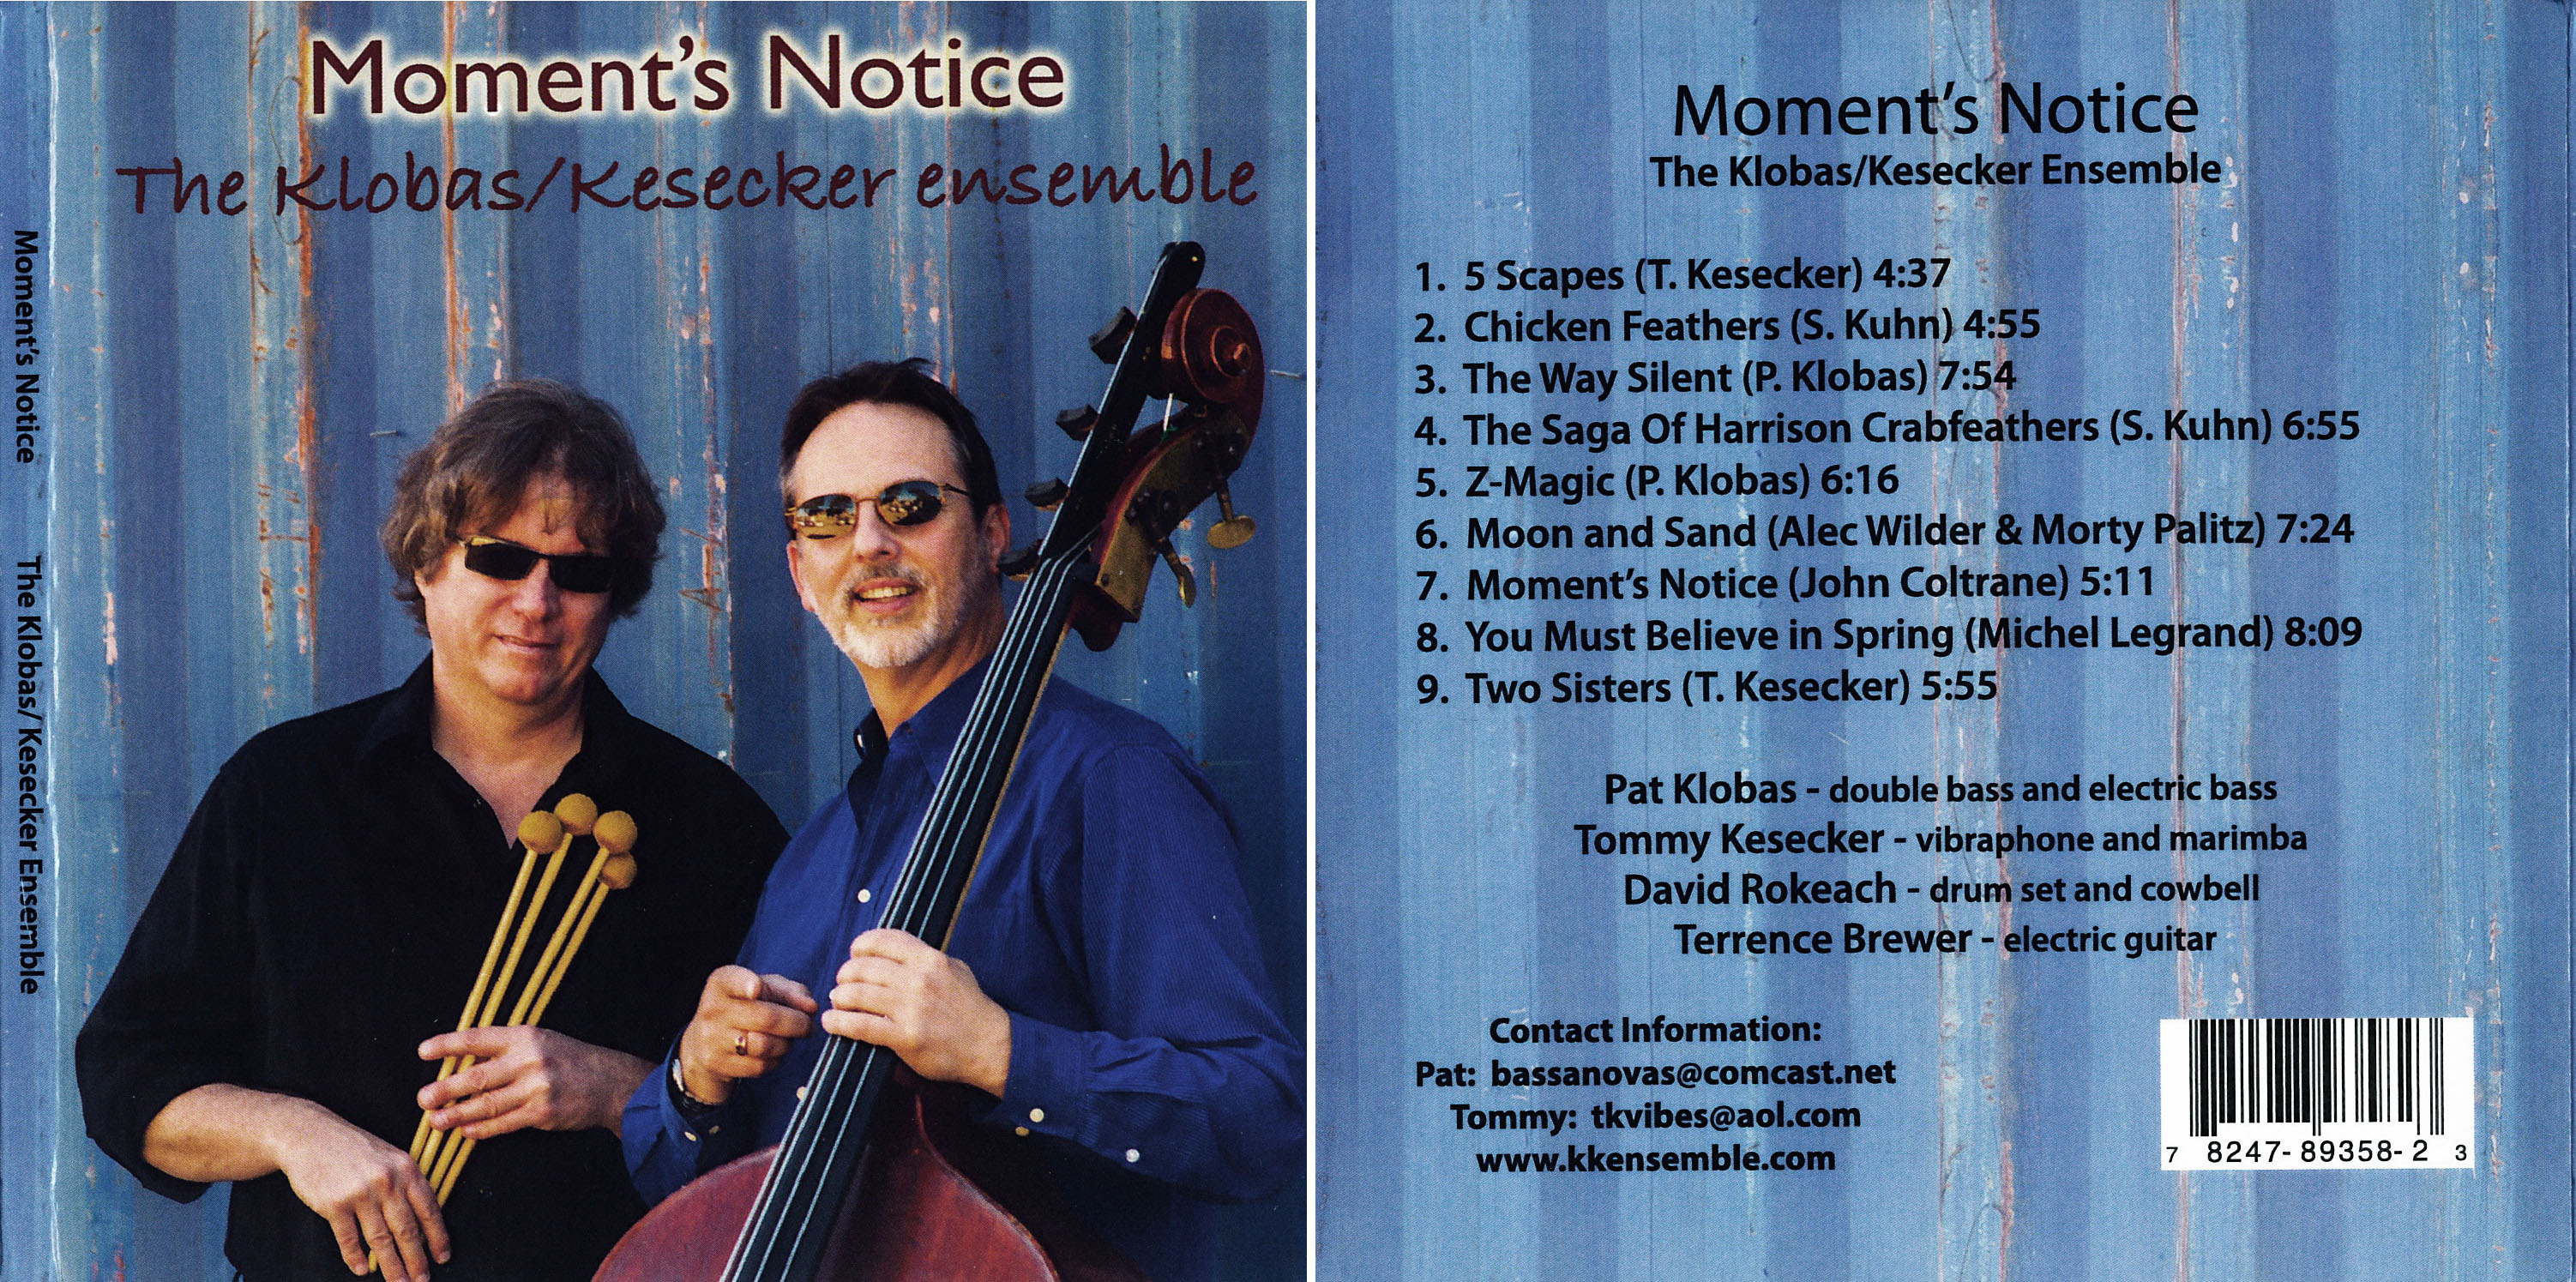 Klobas/Kesecker Ensemble | Moment's Notice